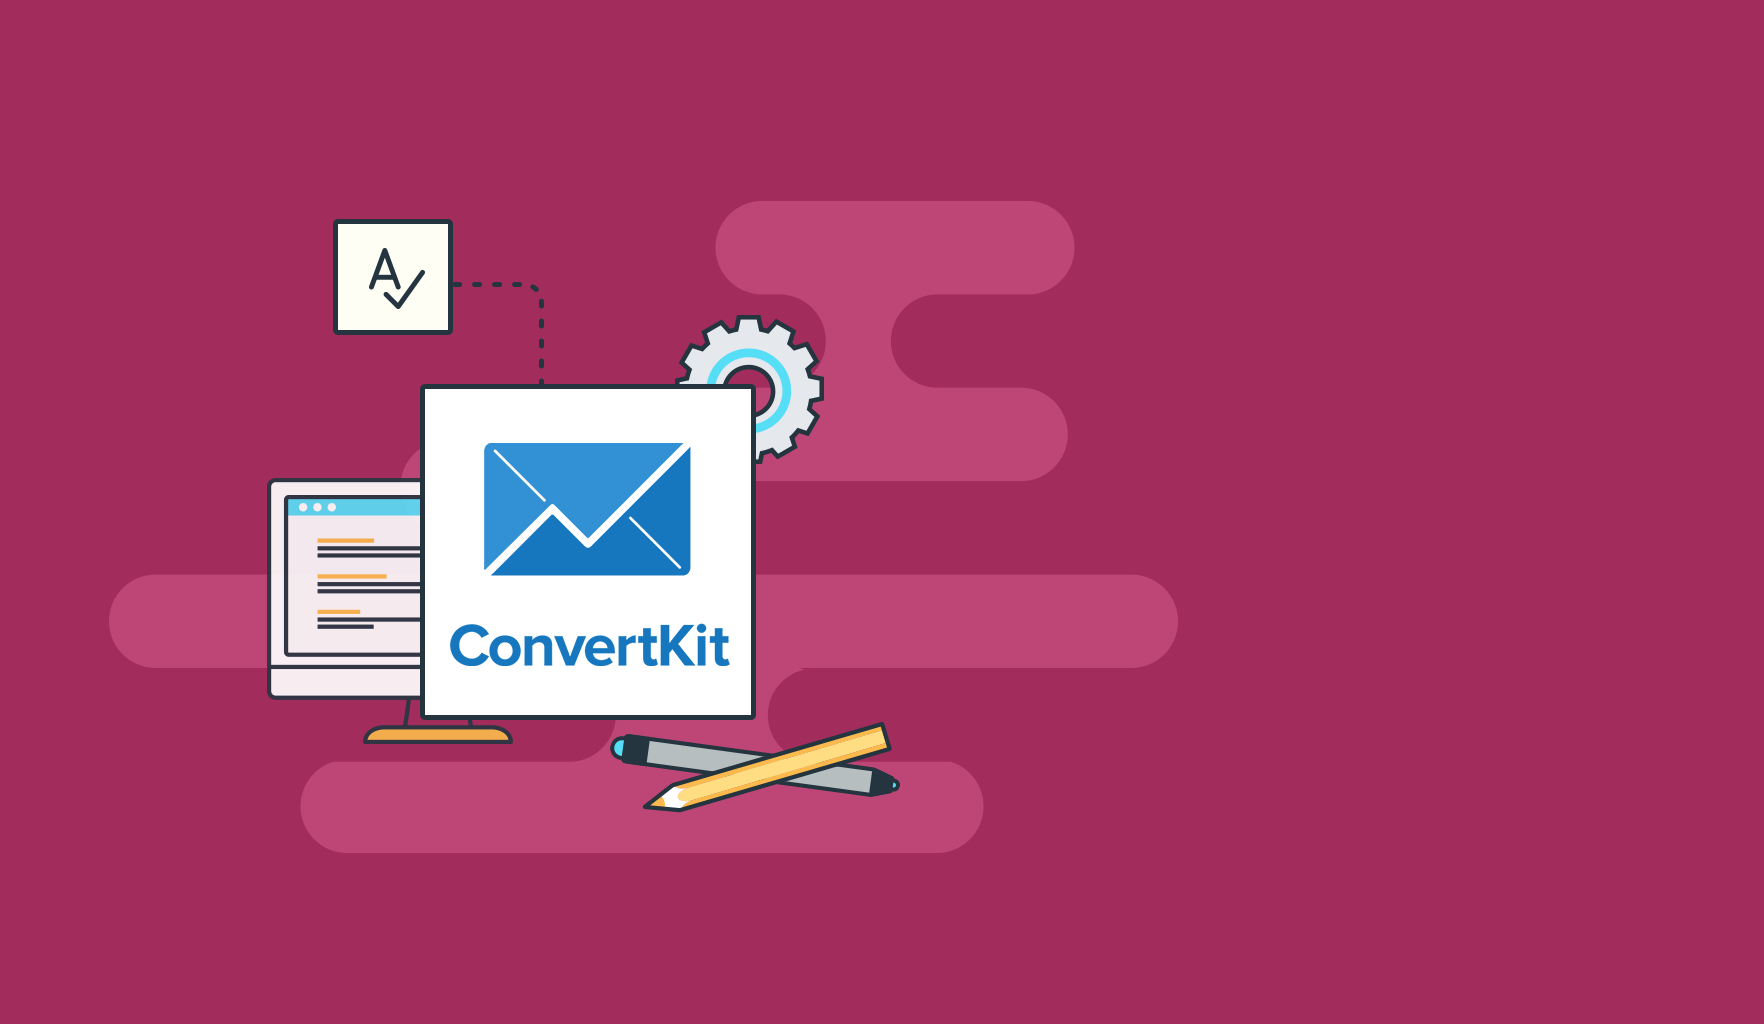 Buy Email Marketing Convertkit Promotional Code 50 Off